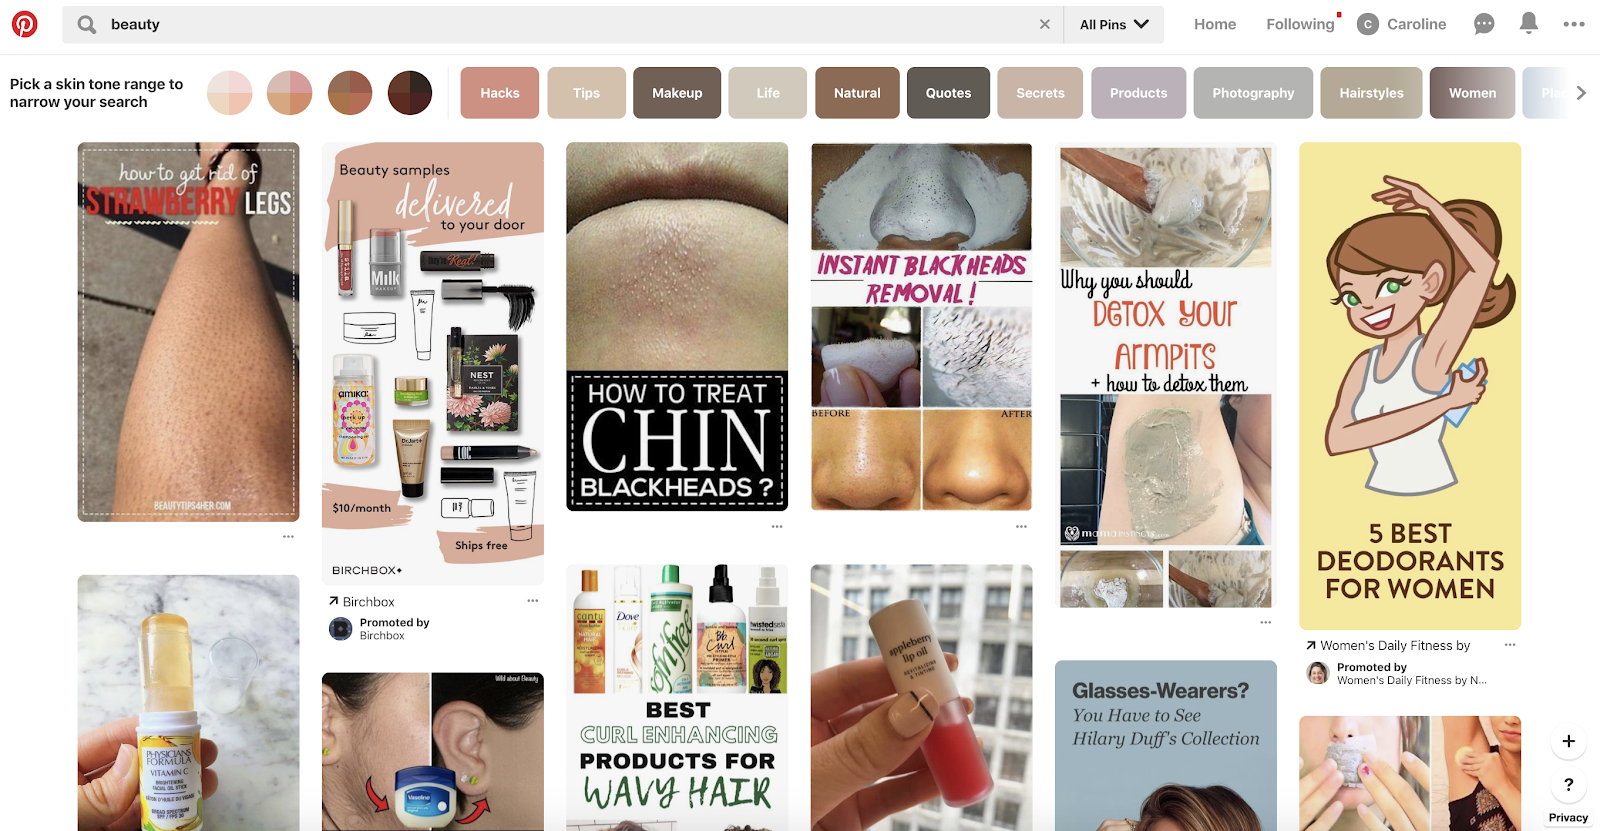 c9914d0a7 The Top 7 Pinterest Categories & How to Decide Which to Pin to